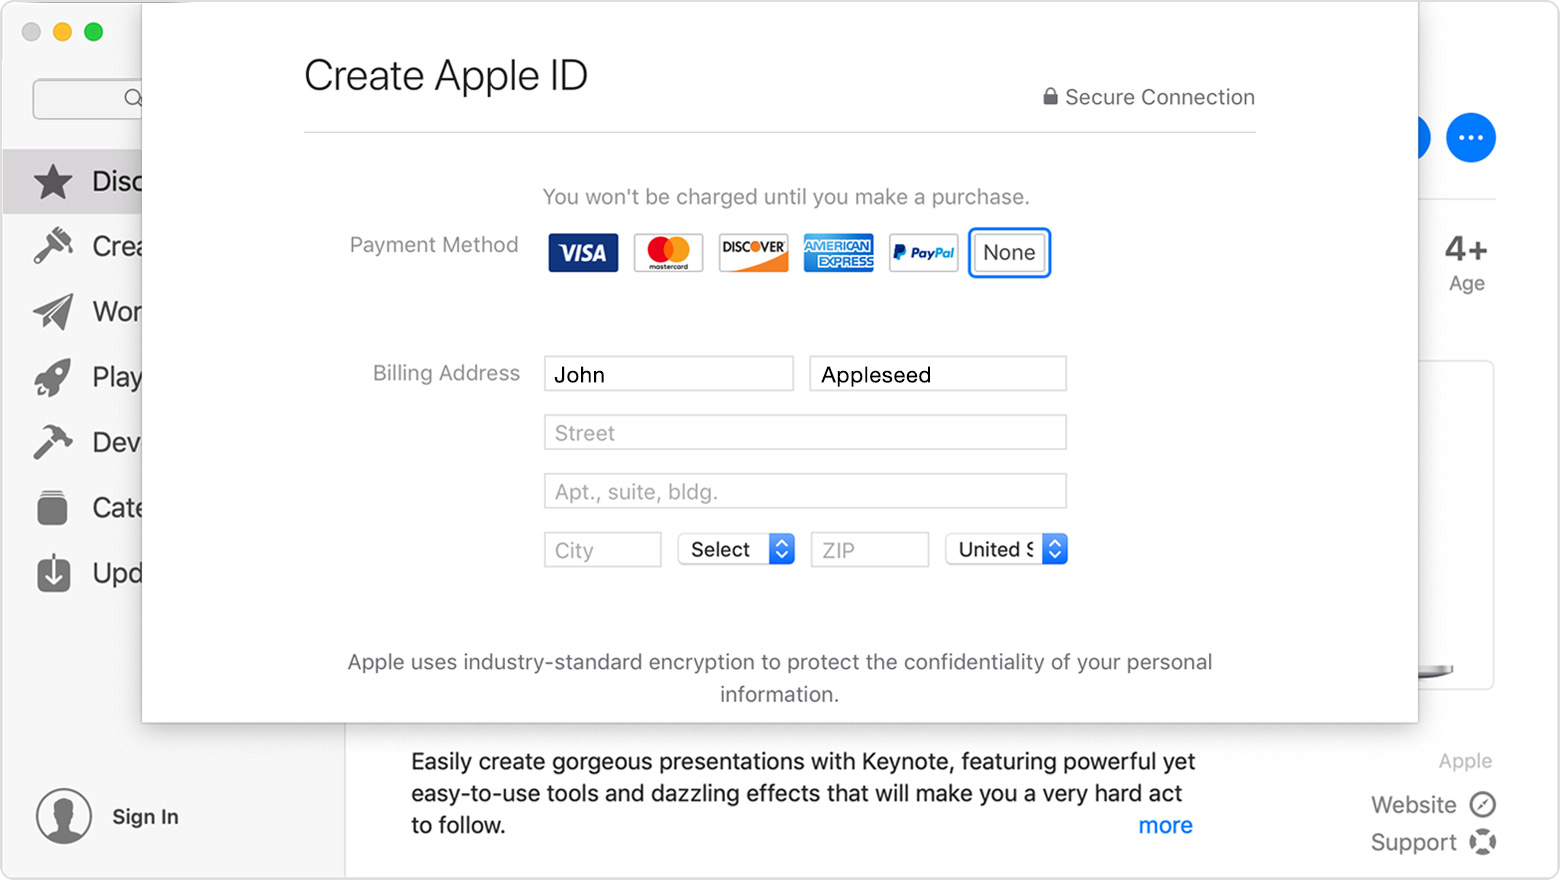 Create or use an Apple ID without a payment method - Apple Support